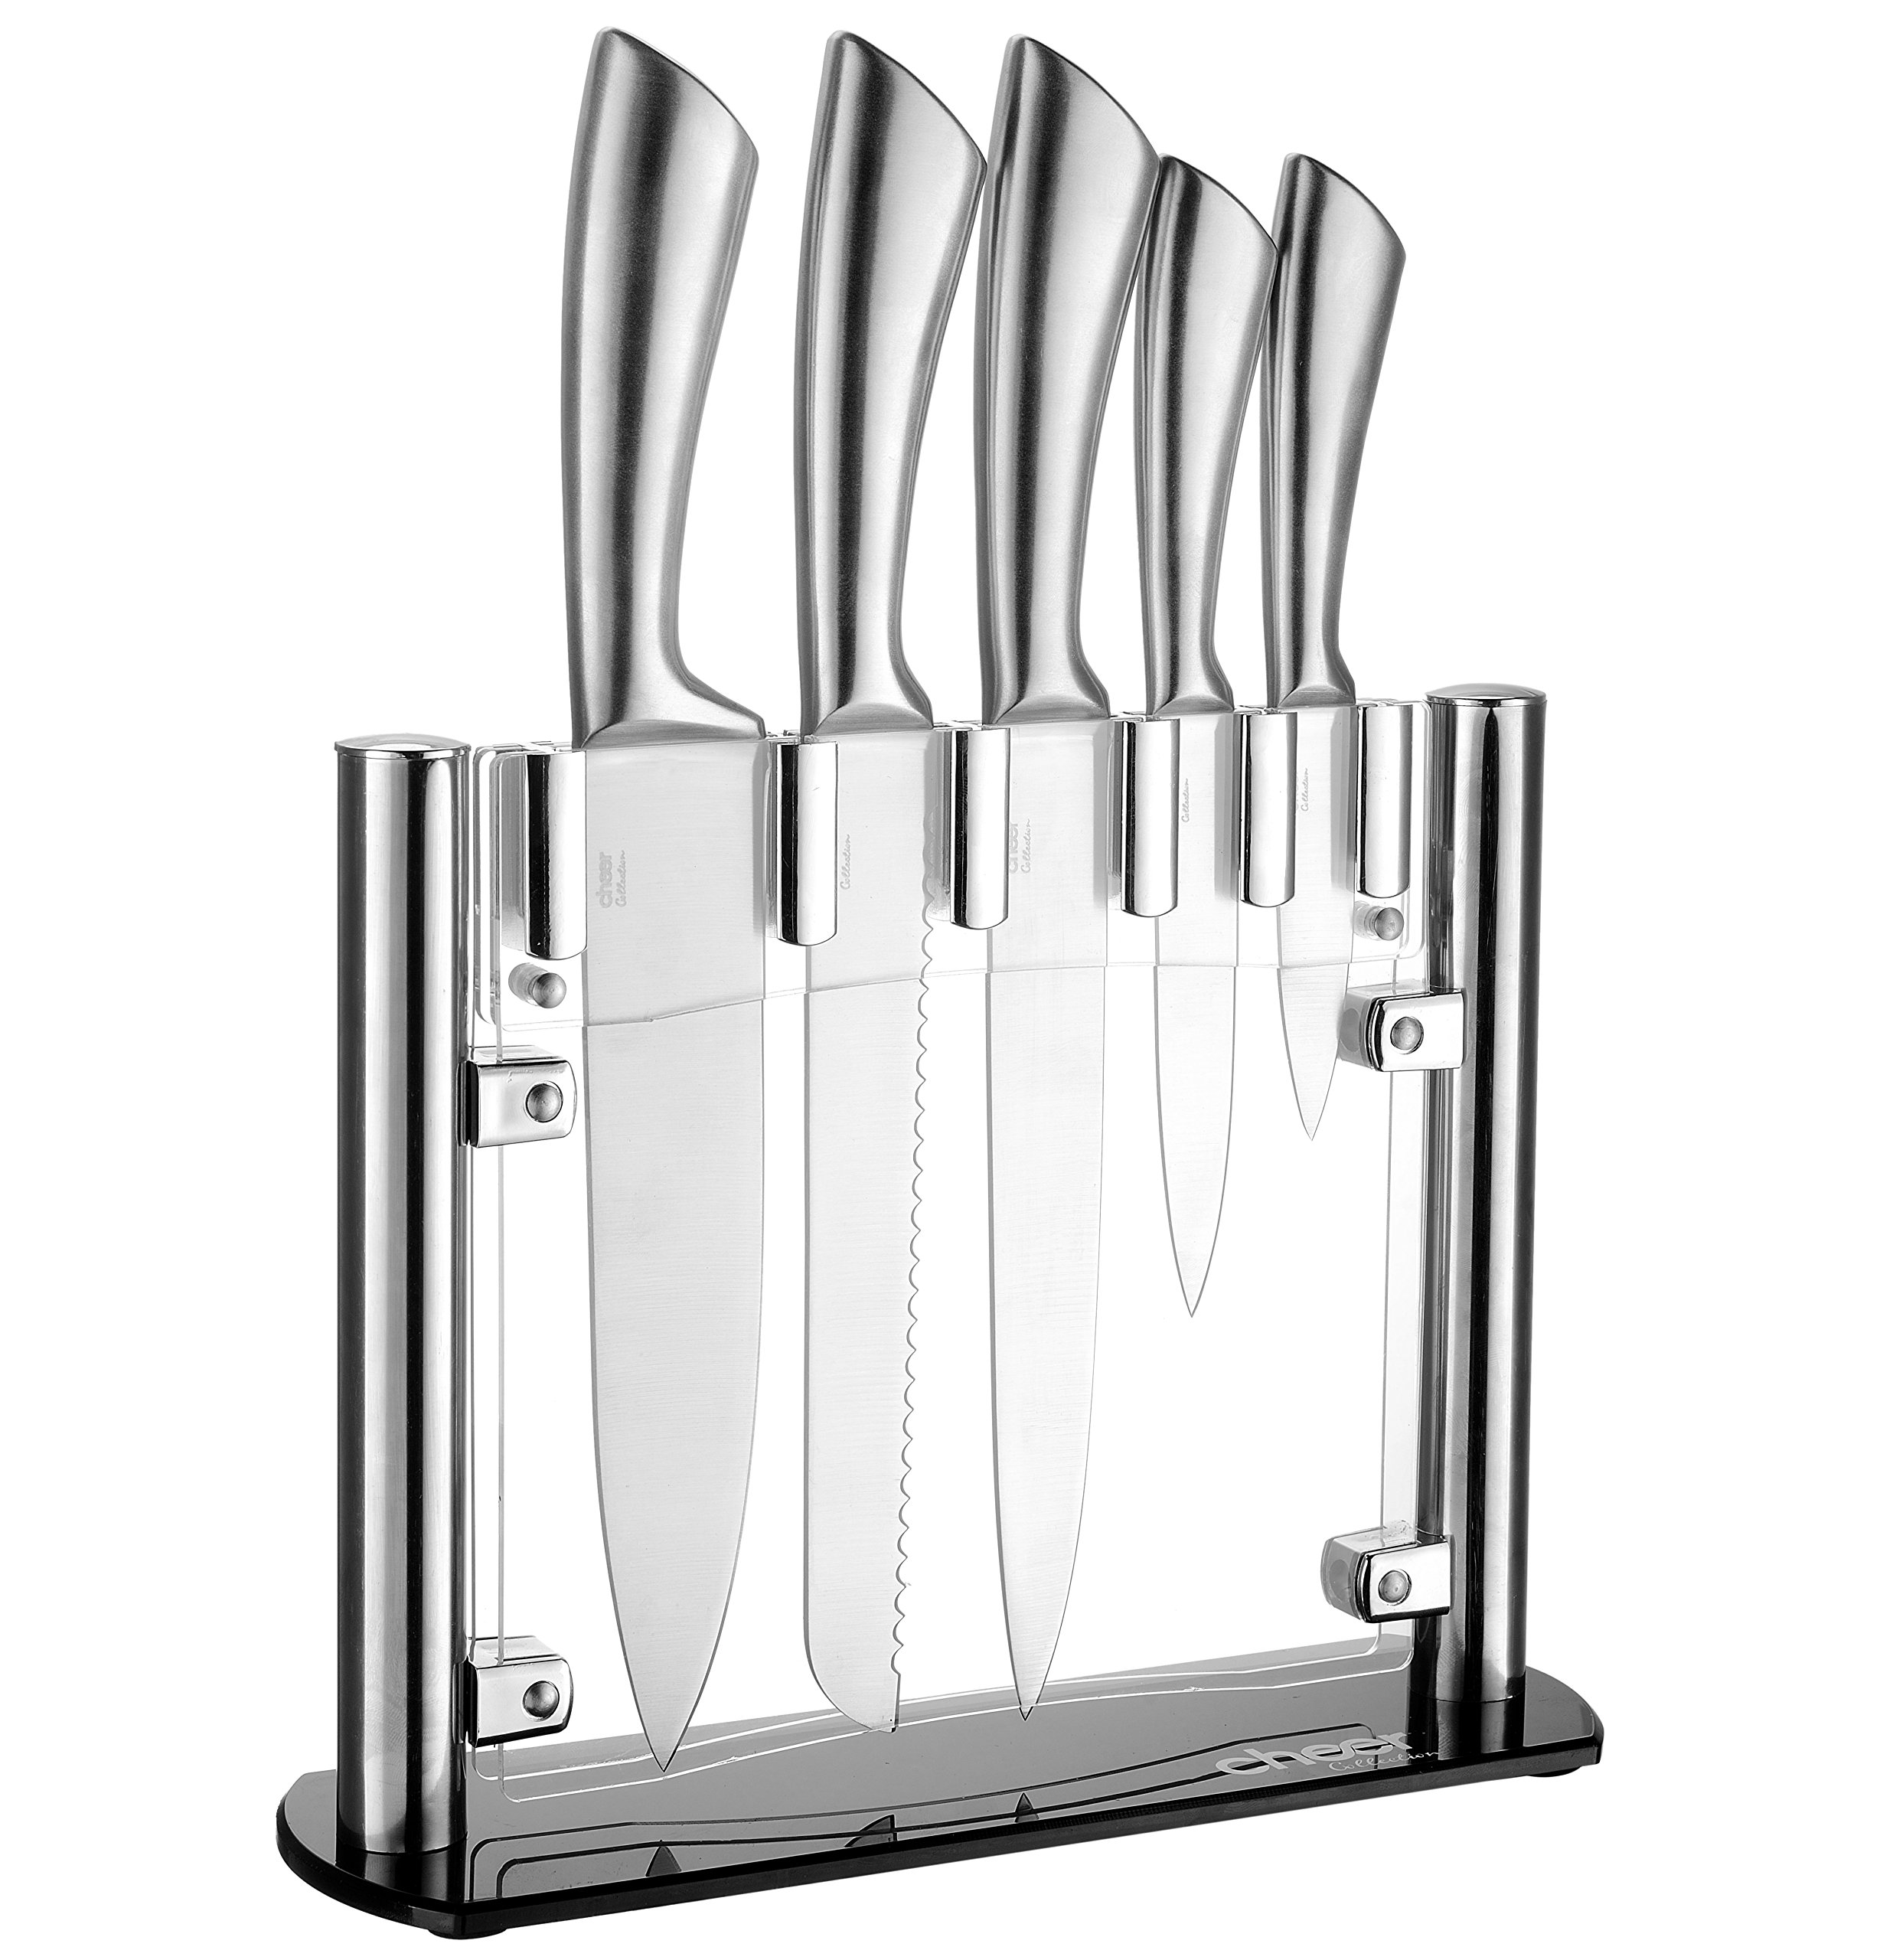 Cheer Collection Stainless Steel Chef Knife Set with Acrylic Stand (6-Piece) Professional Kitchen Utensils | Sharp Serrated and Standard Blades for Mincing, Chopping, Slicing